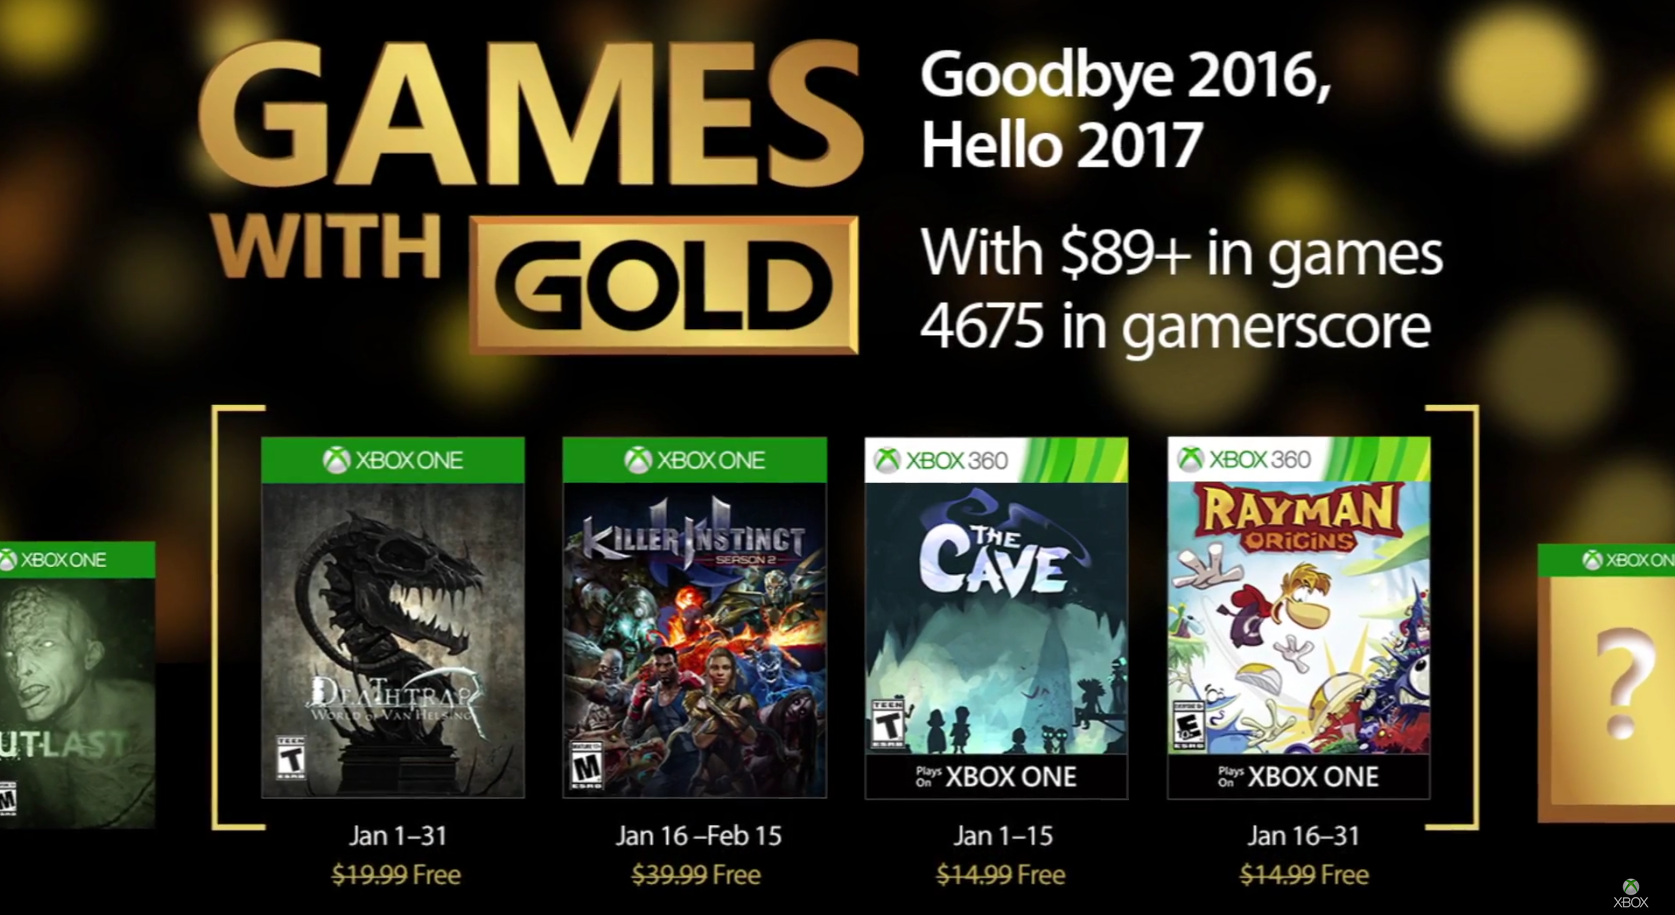 First Game With Gold from January is now available as free download